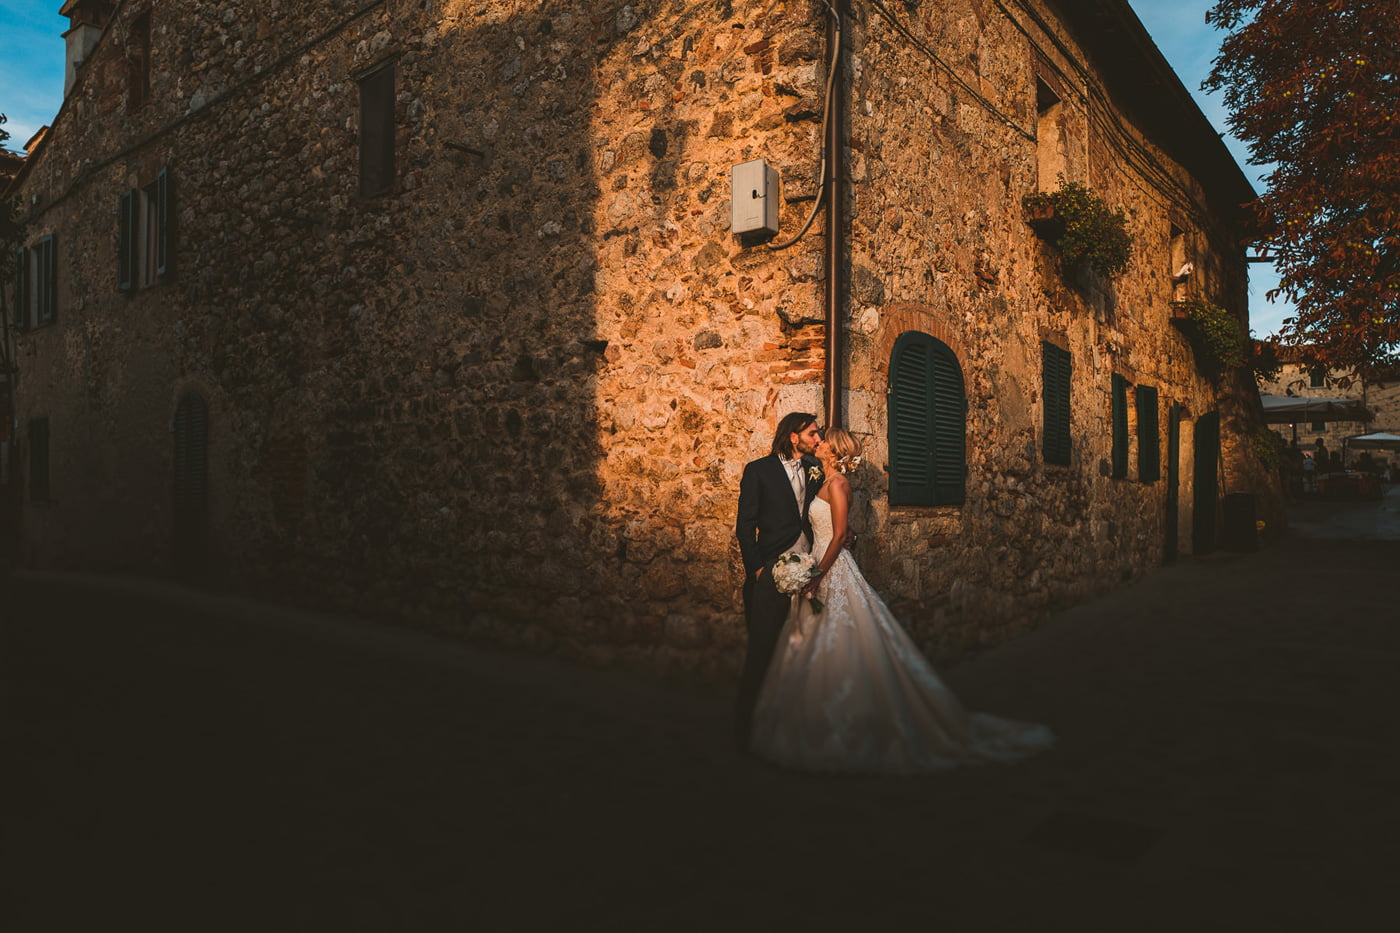 Andrea & Francesca | Wedding at Borgo San Luigi by Federico Pannacci 68